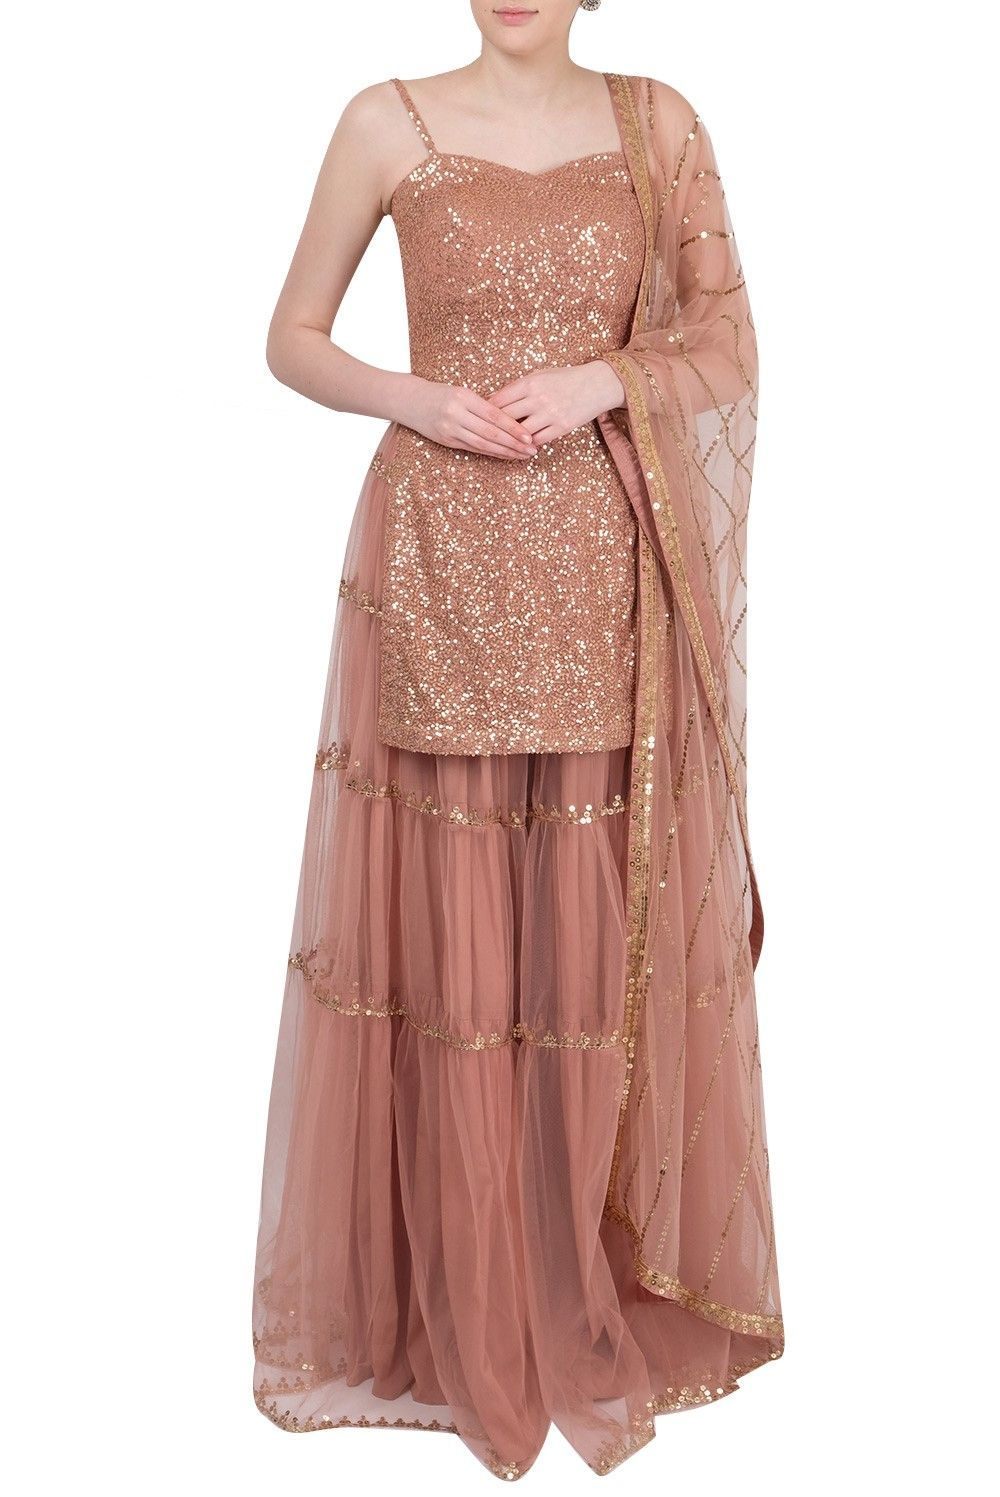 Party Wear Heavy Kurtis For Marriage (18)